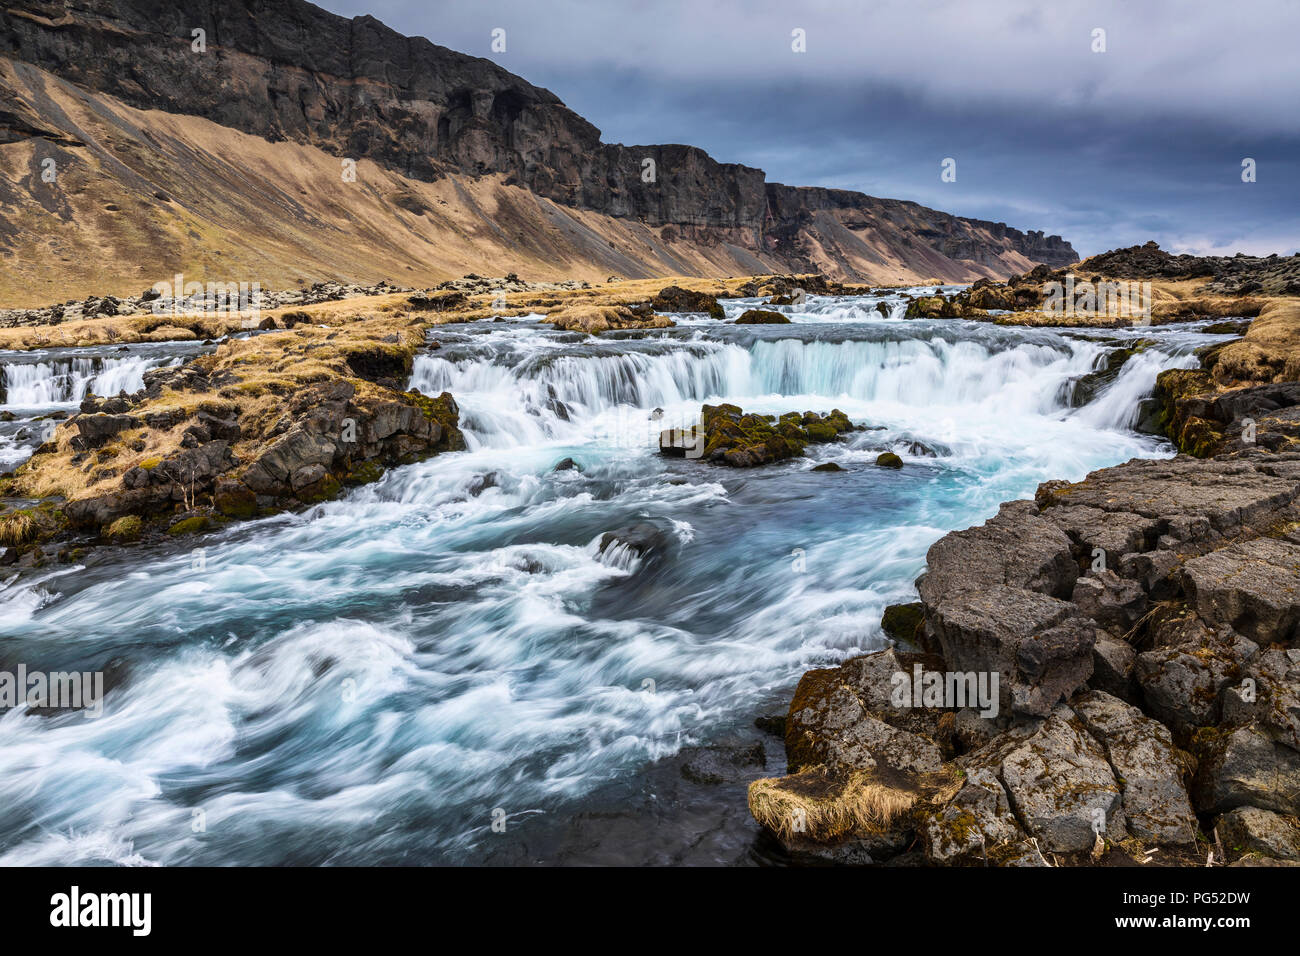 Waterfalls near the Pjodvegur road in the Southern Region of Iceland - Stock Image